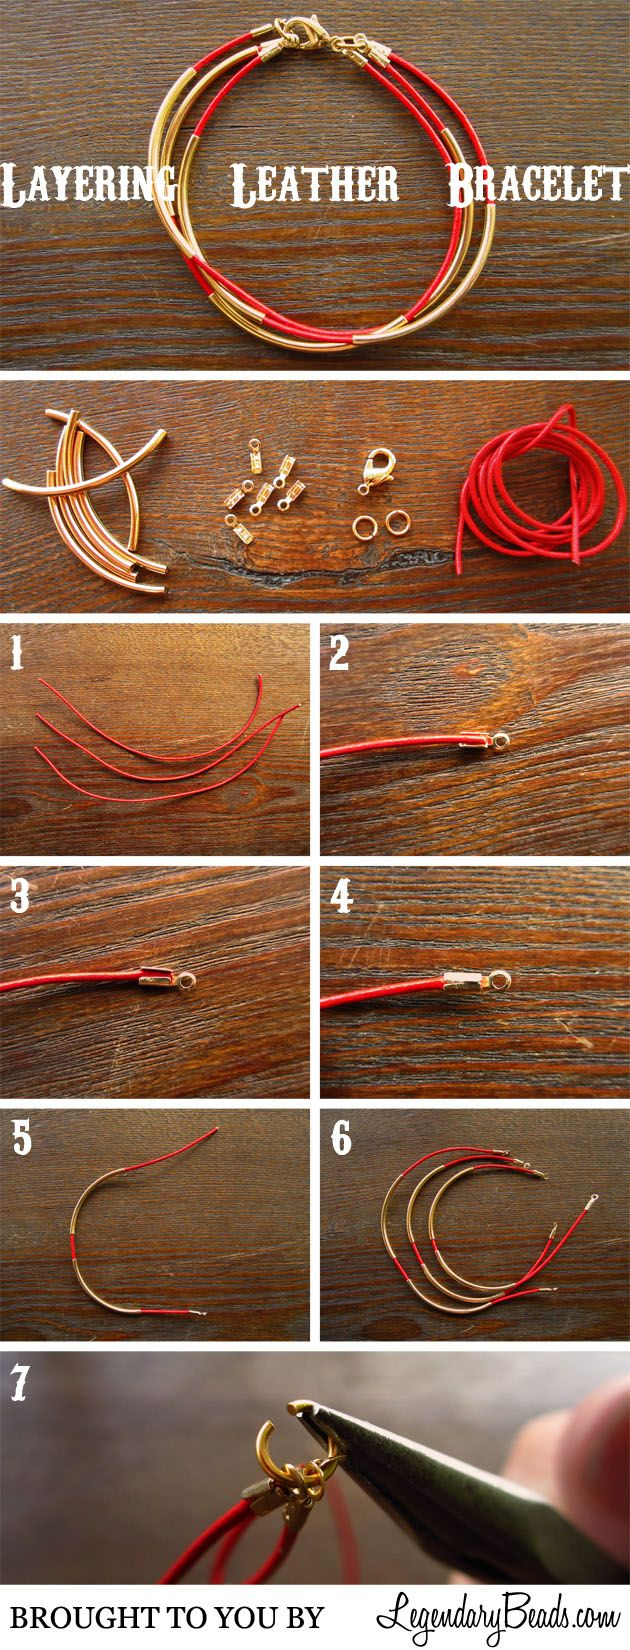 Tutorial: Leather Bracelet DIY bracelet fil cuir et tubes dorés